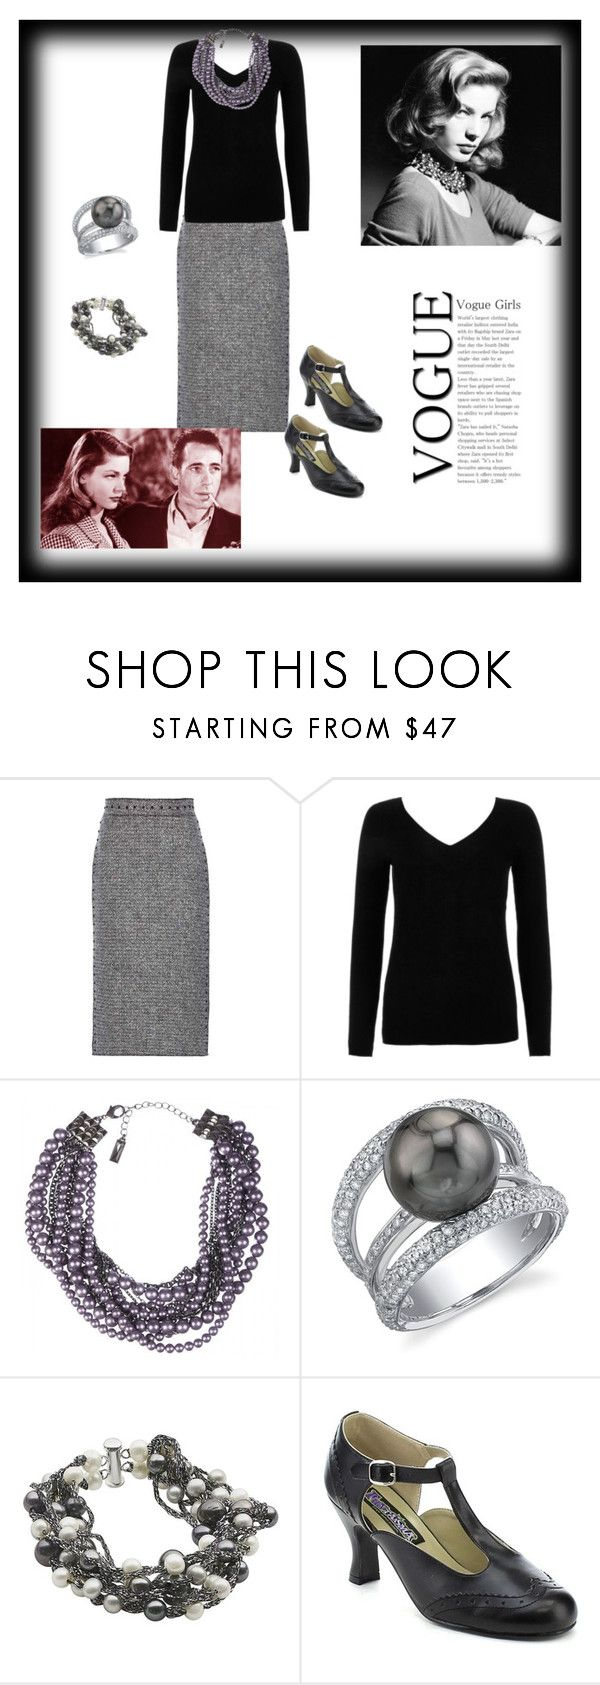 """BACALL AND BOGART"" by destinystarheaven ❤ liked on Polyvore featuring Valentino, River Island, Lia Sophia and Funtasma"